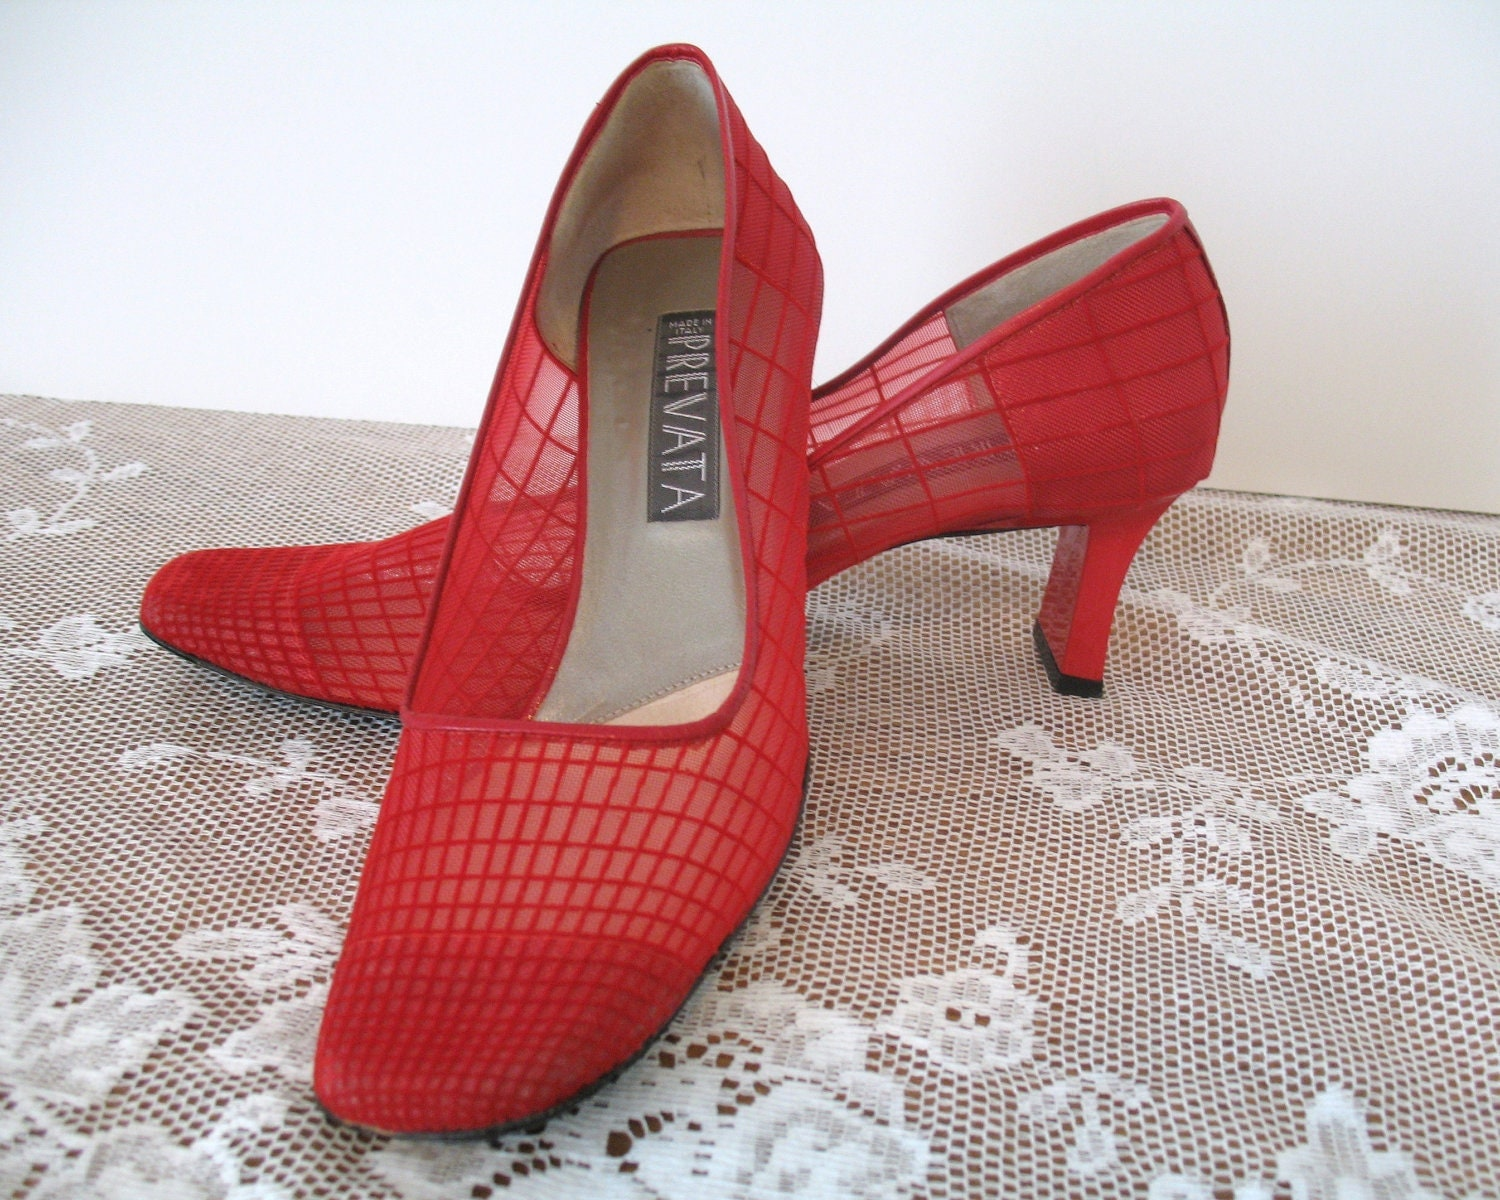 prevata high heel shoes italian designer by